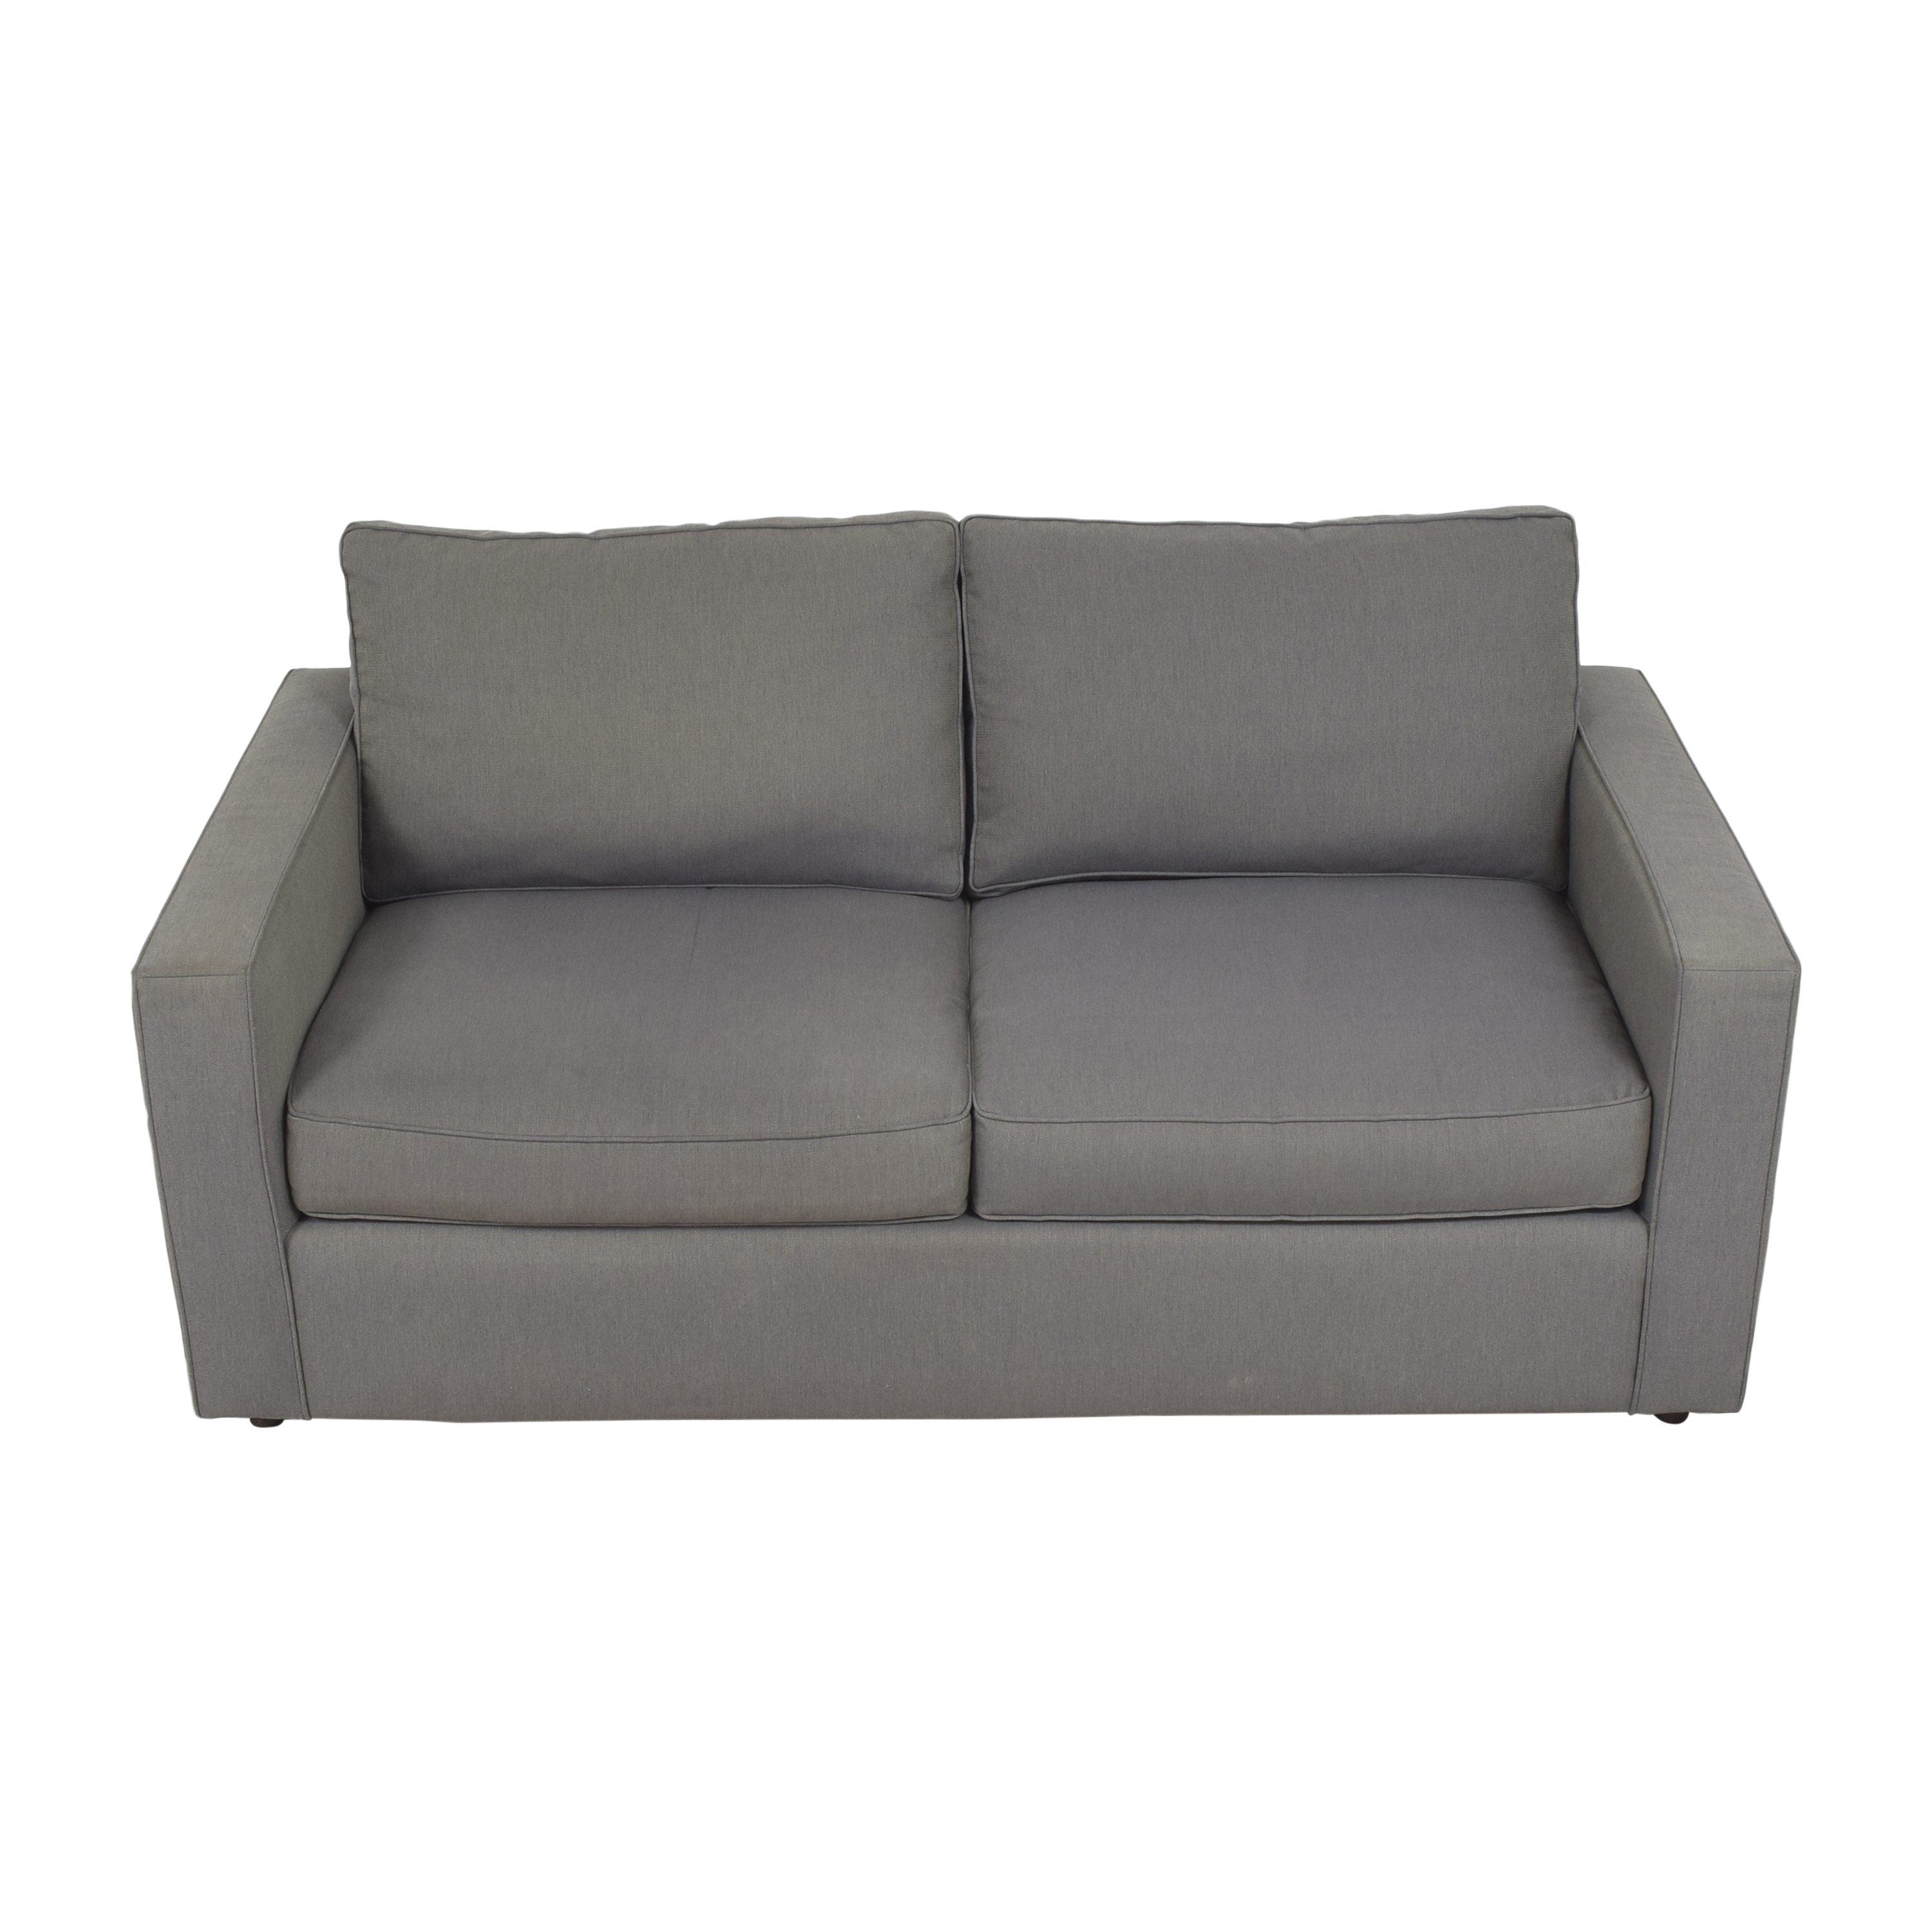 buy Room & Board York Two Cushion Sofa Room & Board Sofas